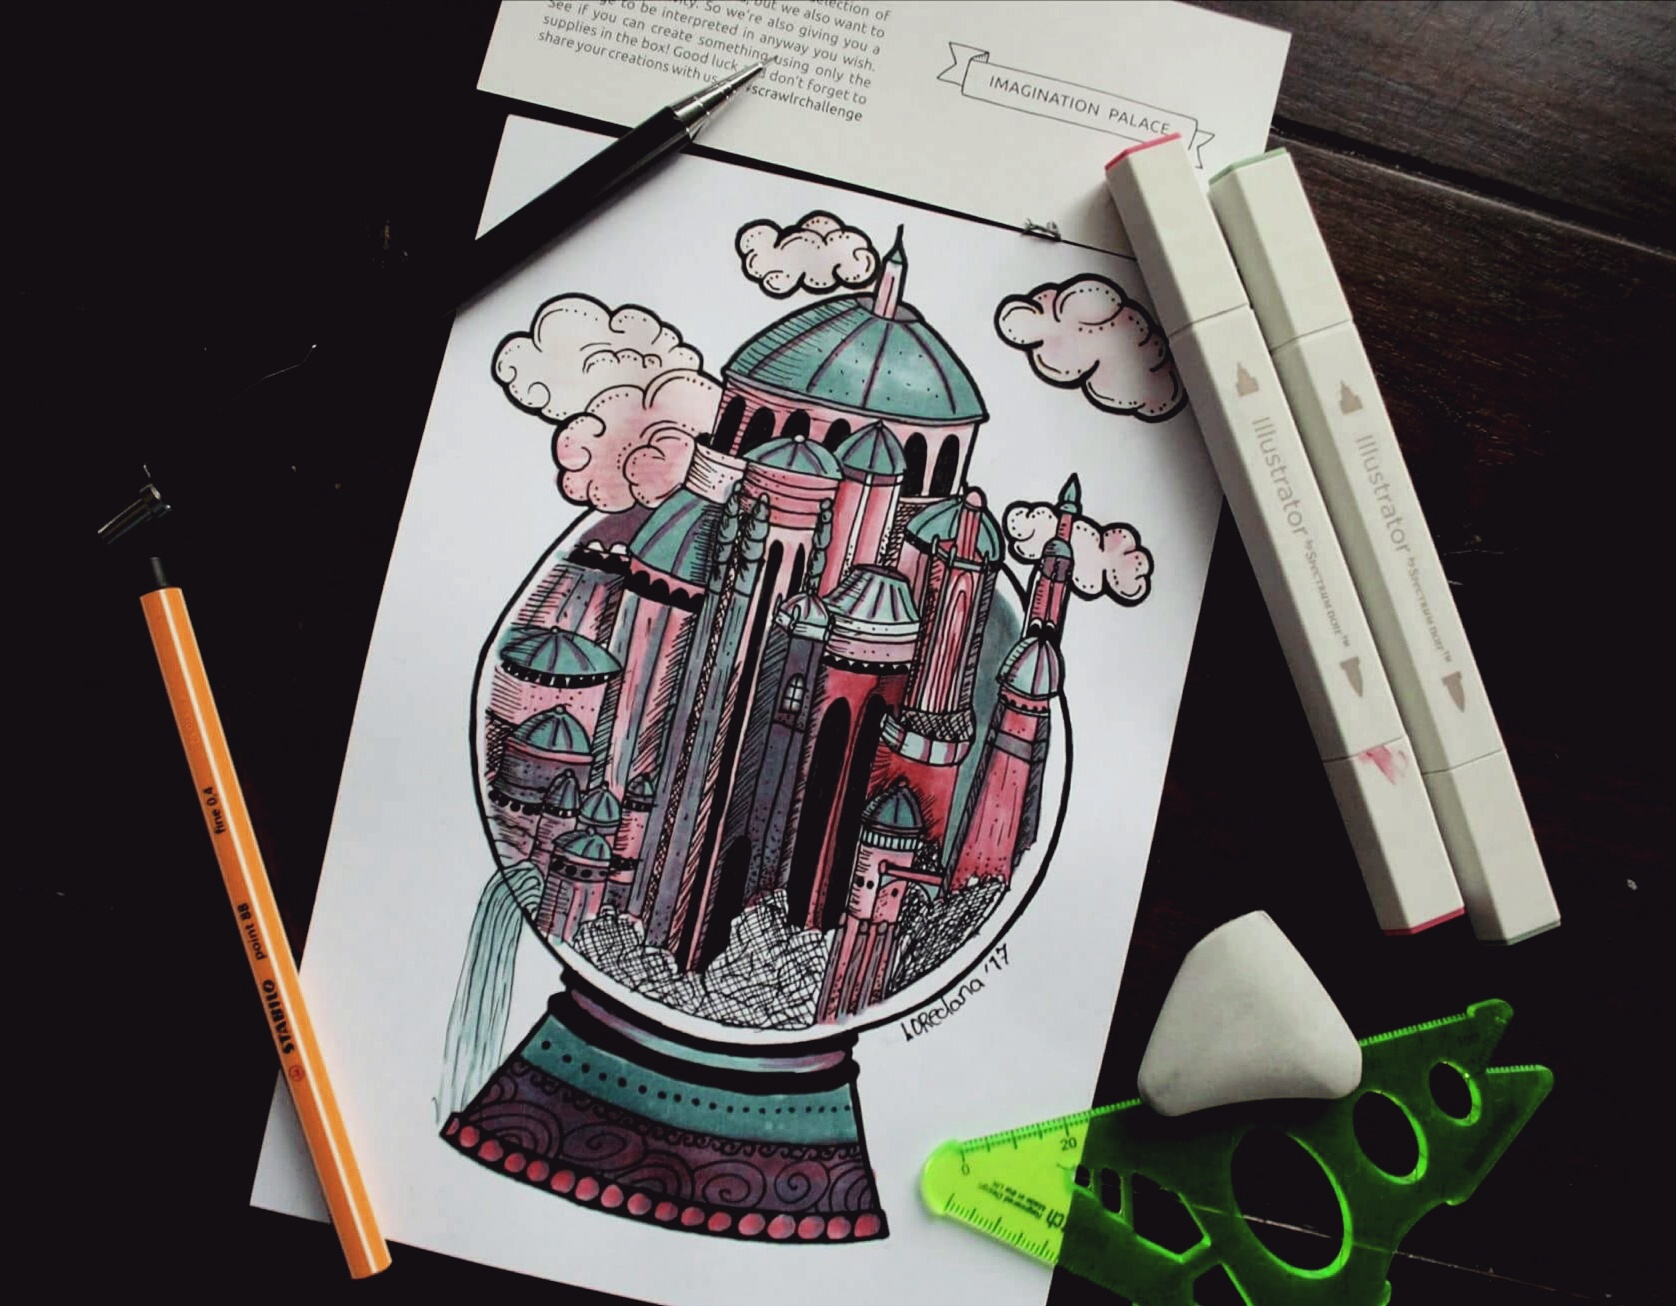 Scrawlrbox challenge August 2017 • Imagination Palace•